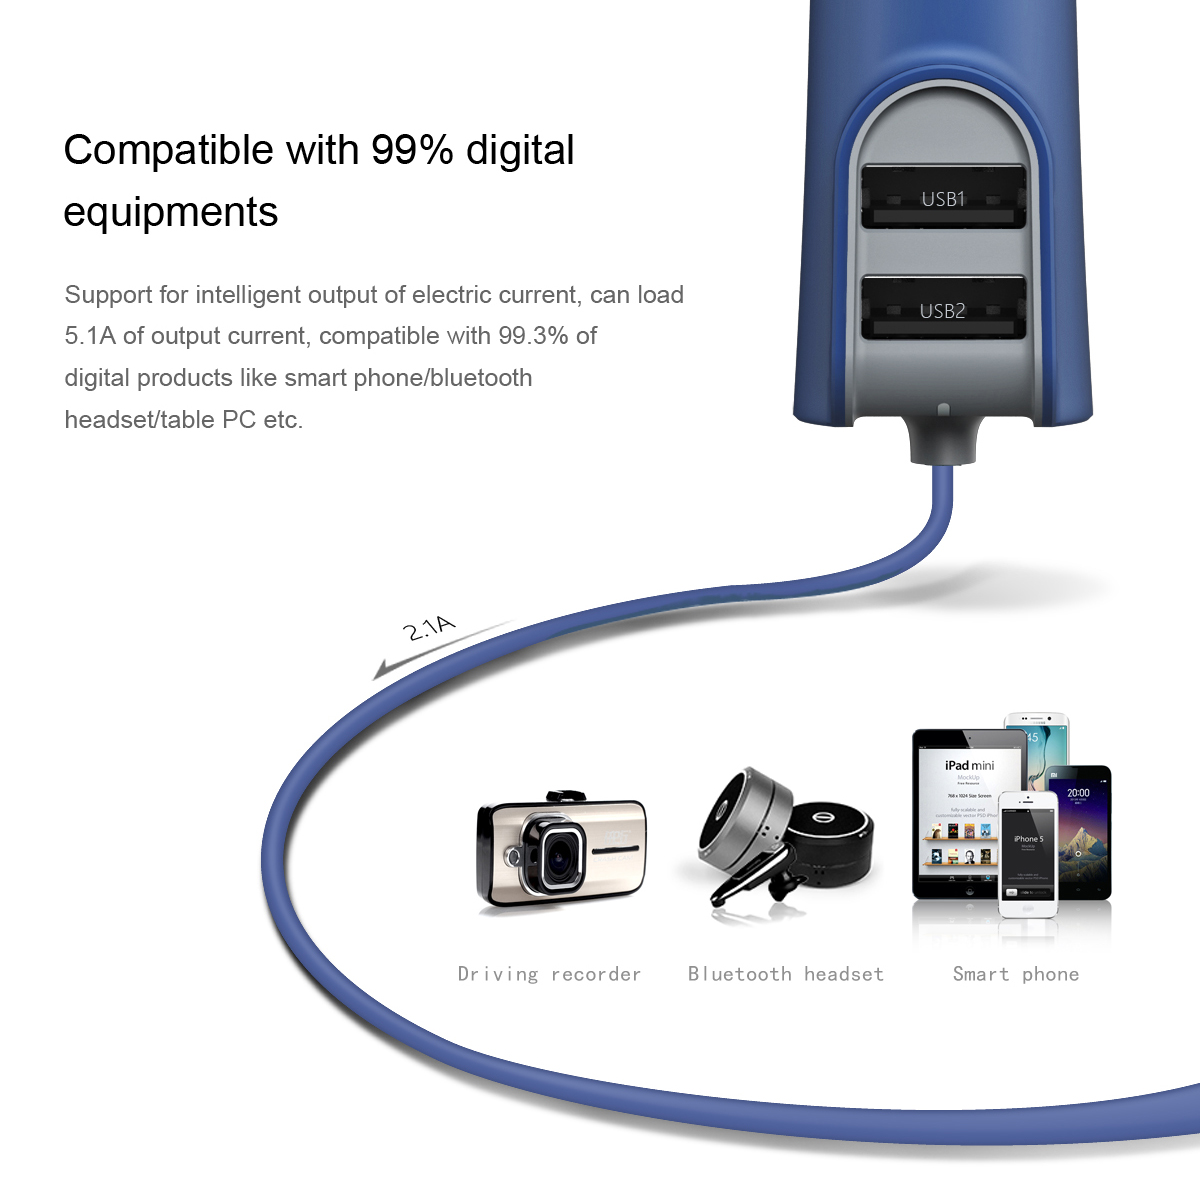 Dual iPhone Car Charger with data cable - 3 port USB Fast Charging 5